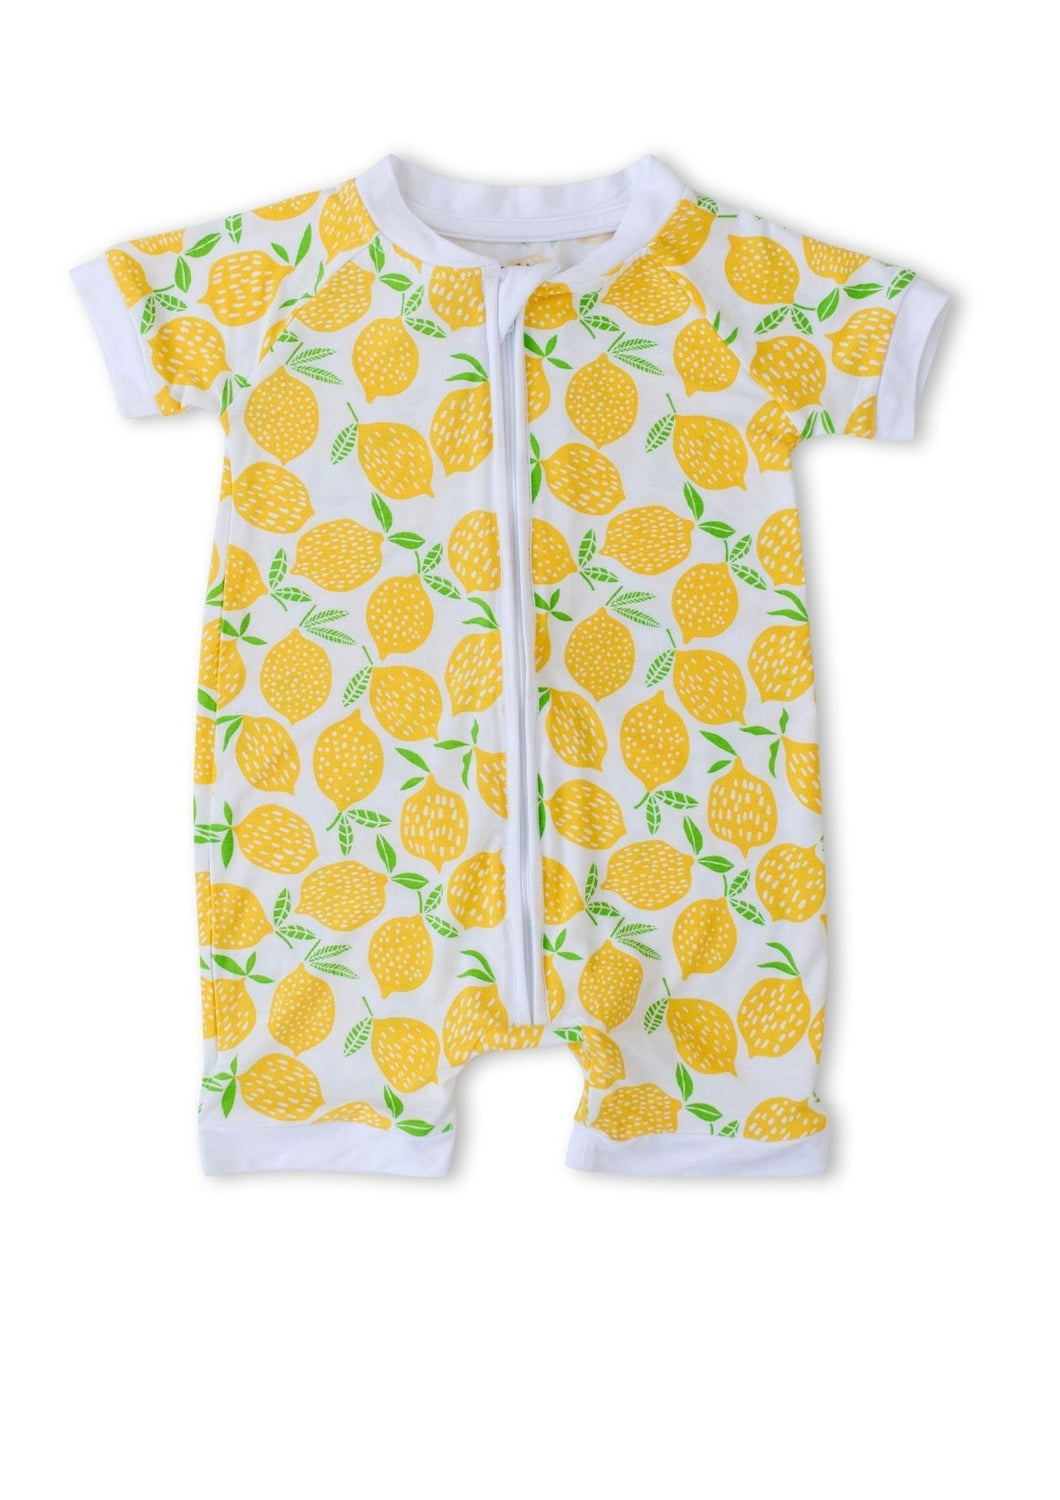 Little Sleepies Bamboo Shorty Zippy Lemons